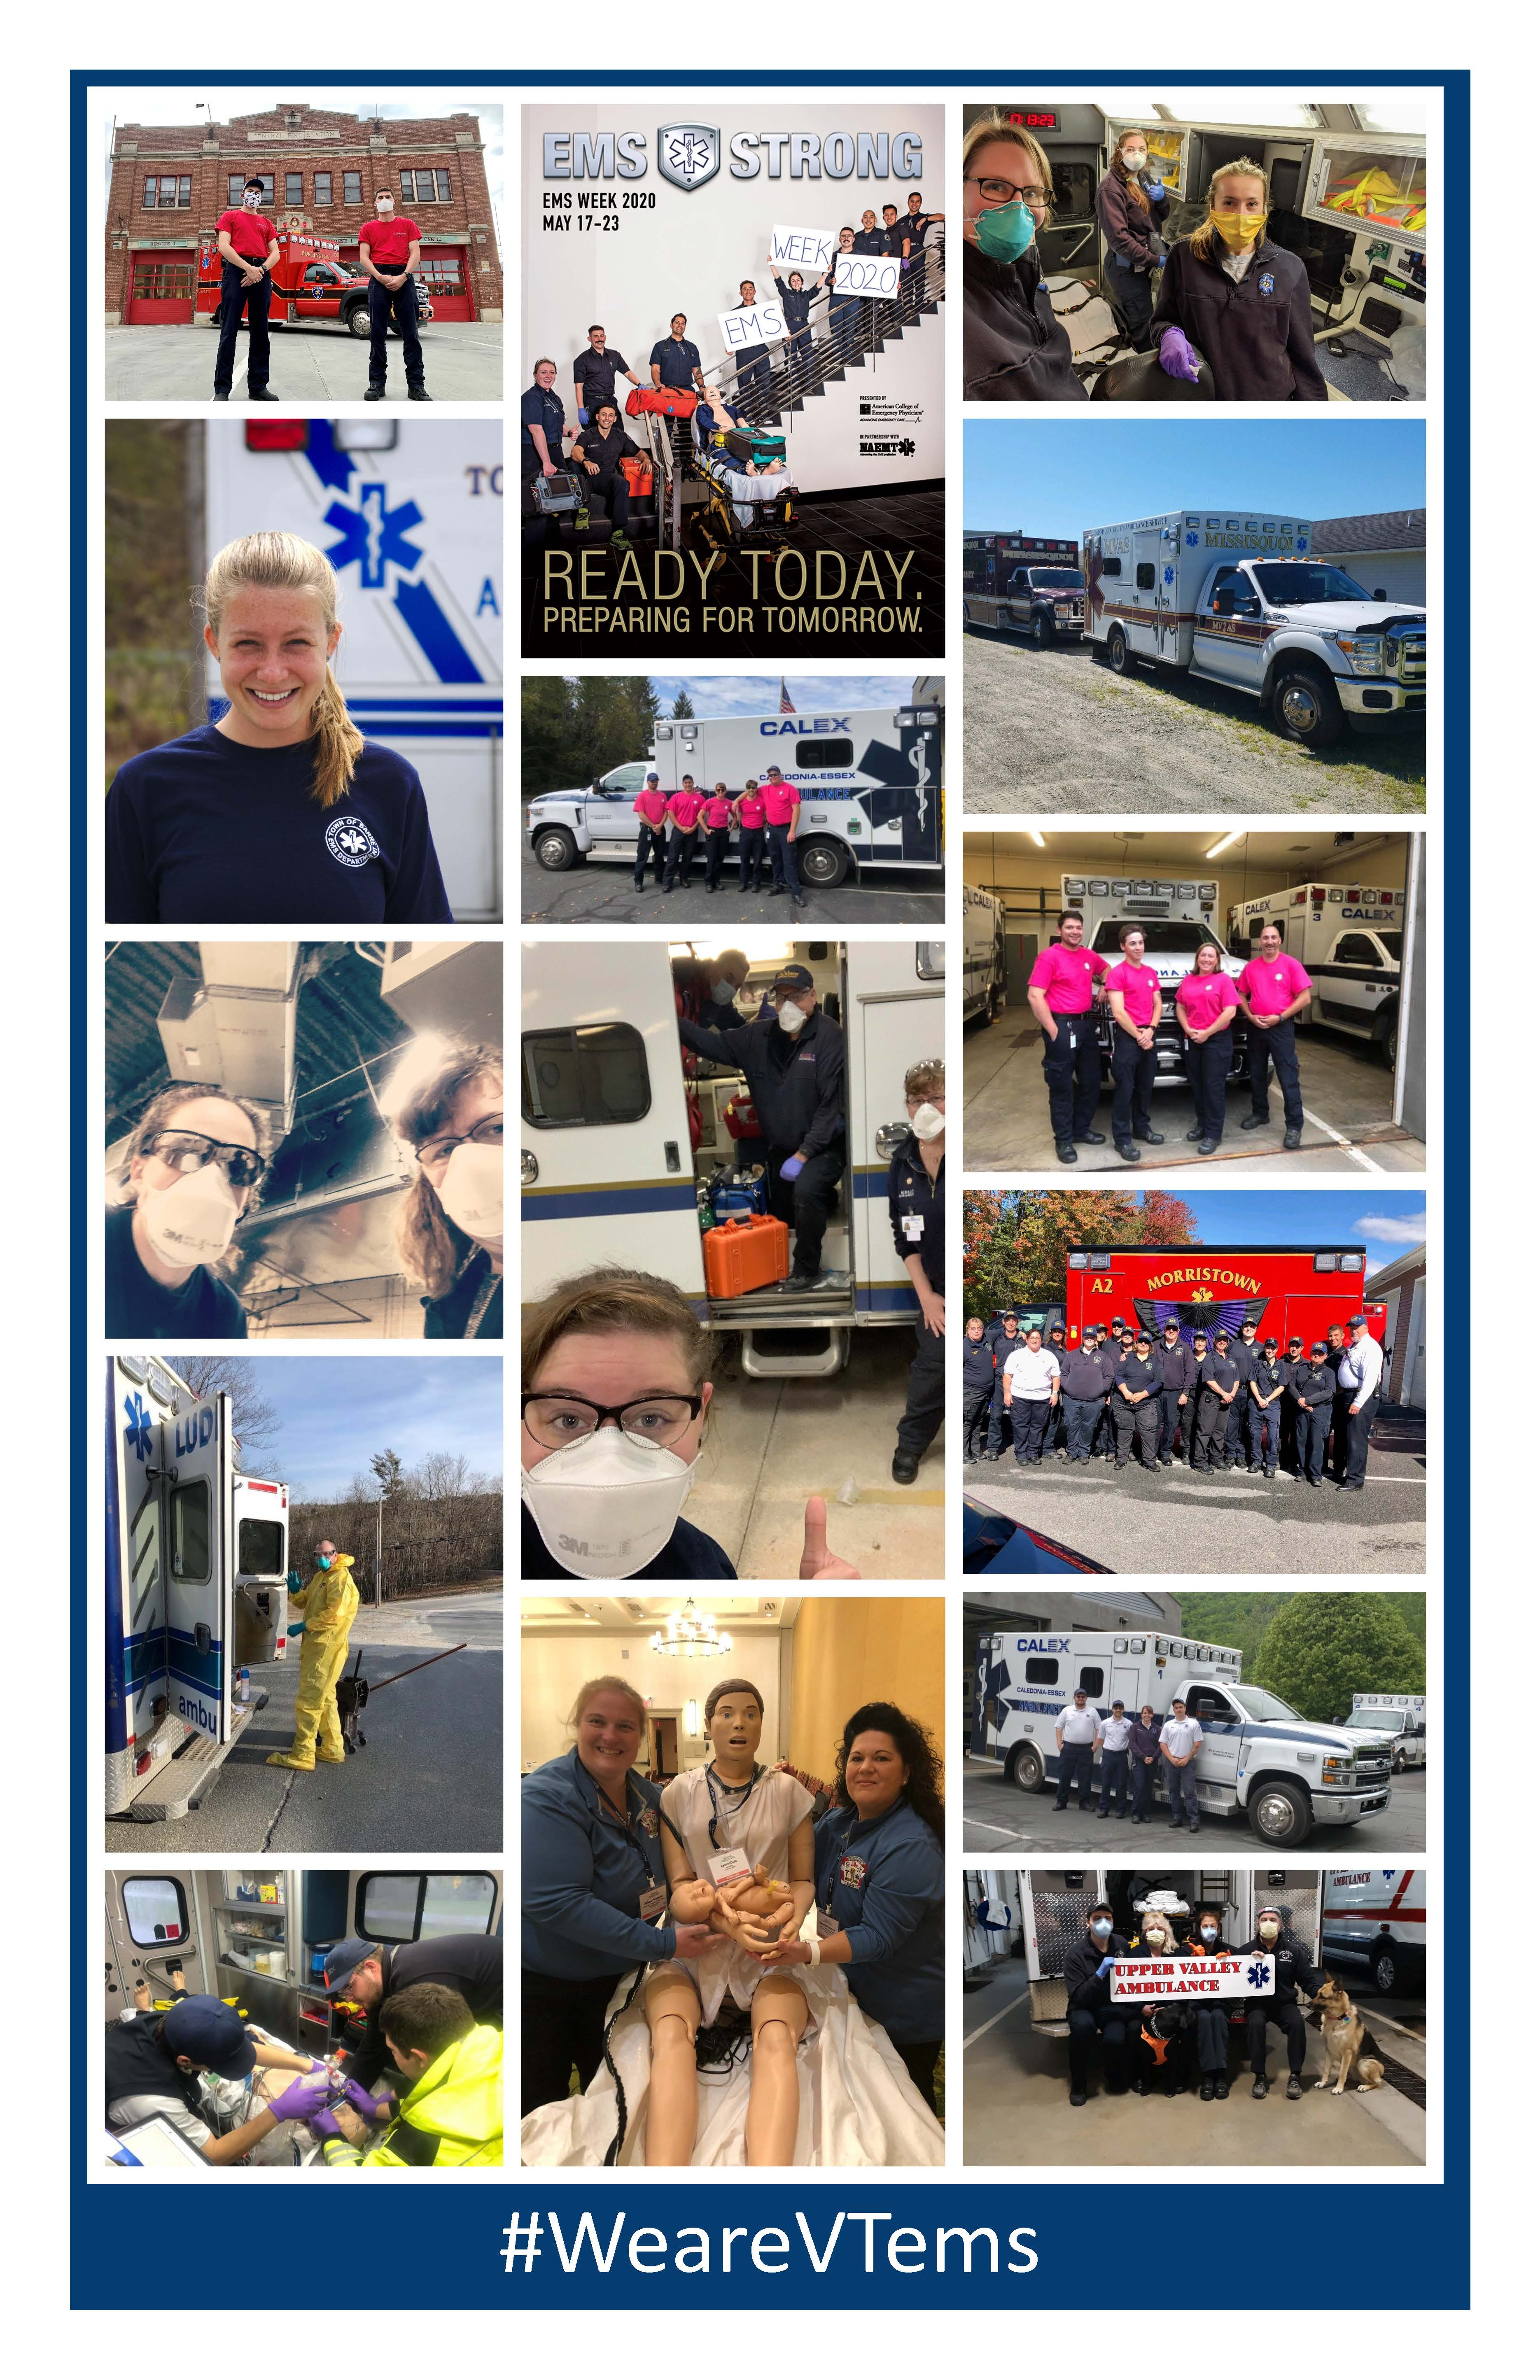 Photo collage of Vermont emergency medical services professionals and ambulance vehicles